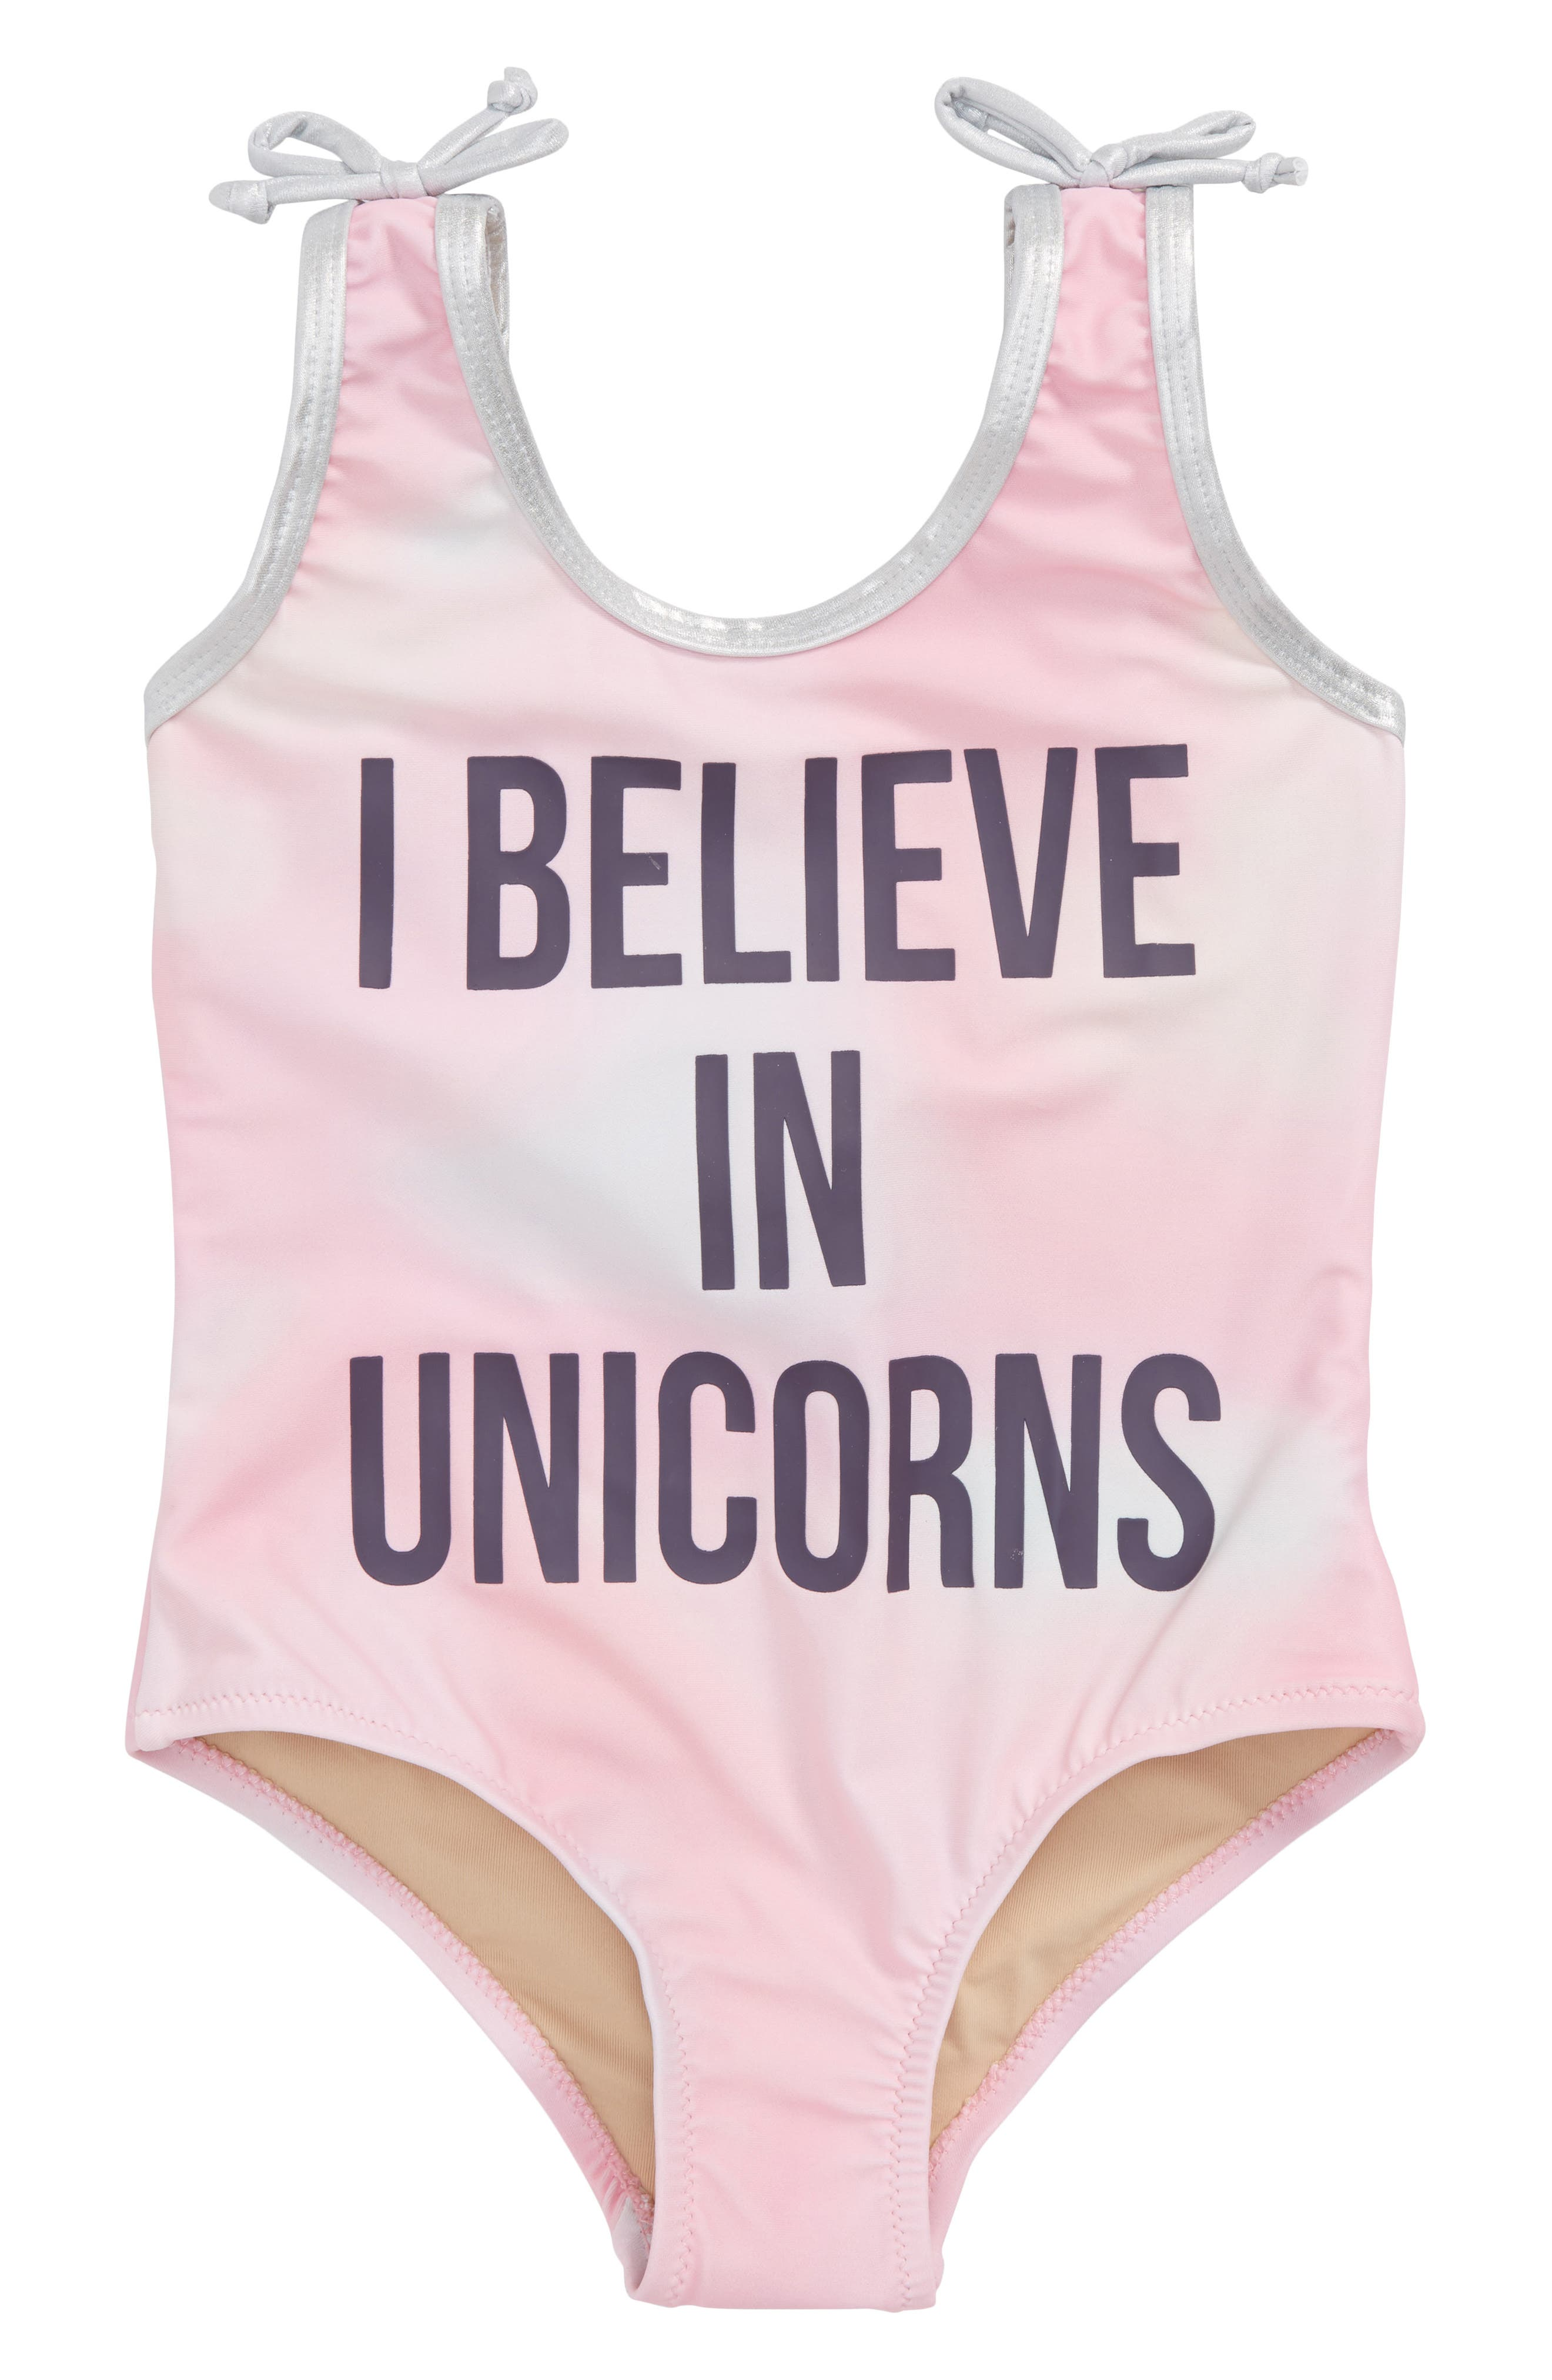 I Believe in Unicorns Tie Dye One-Piece Swimsuit,                             Main thumbnail 1, color,                             Coral